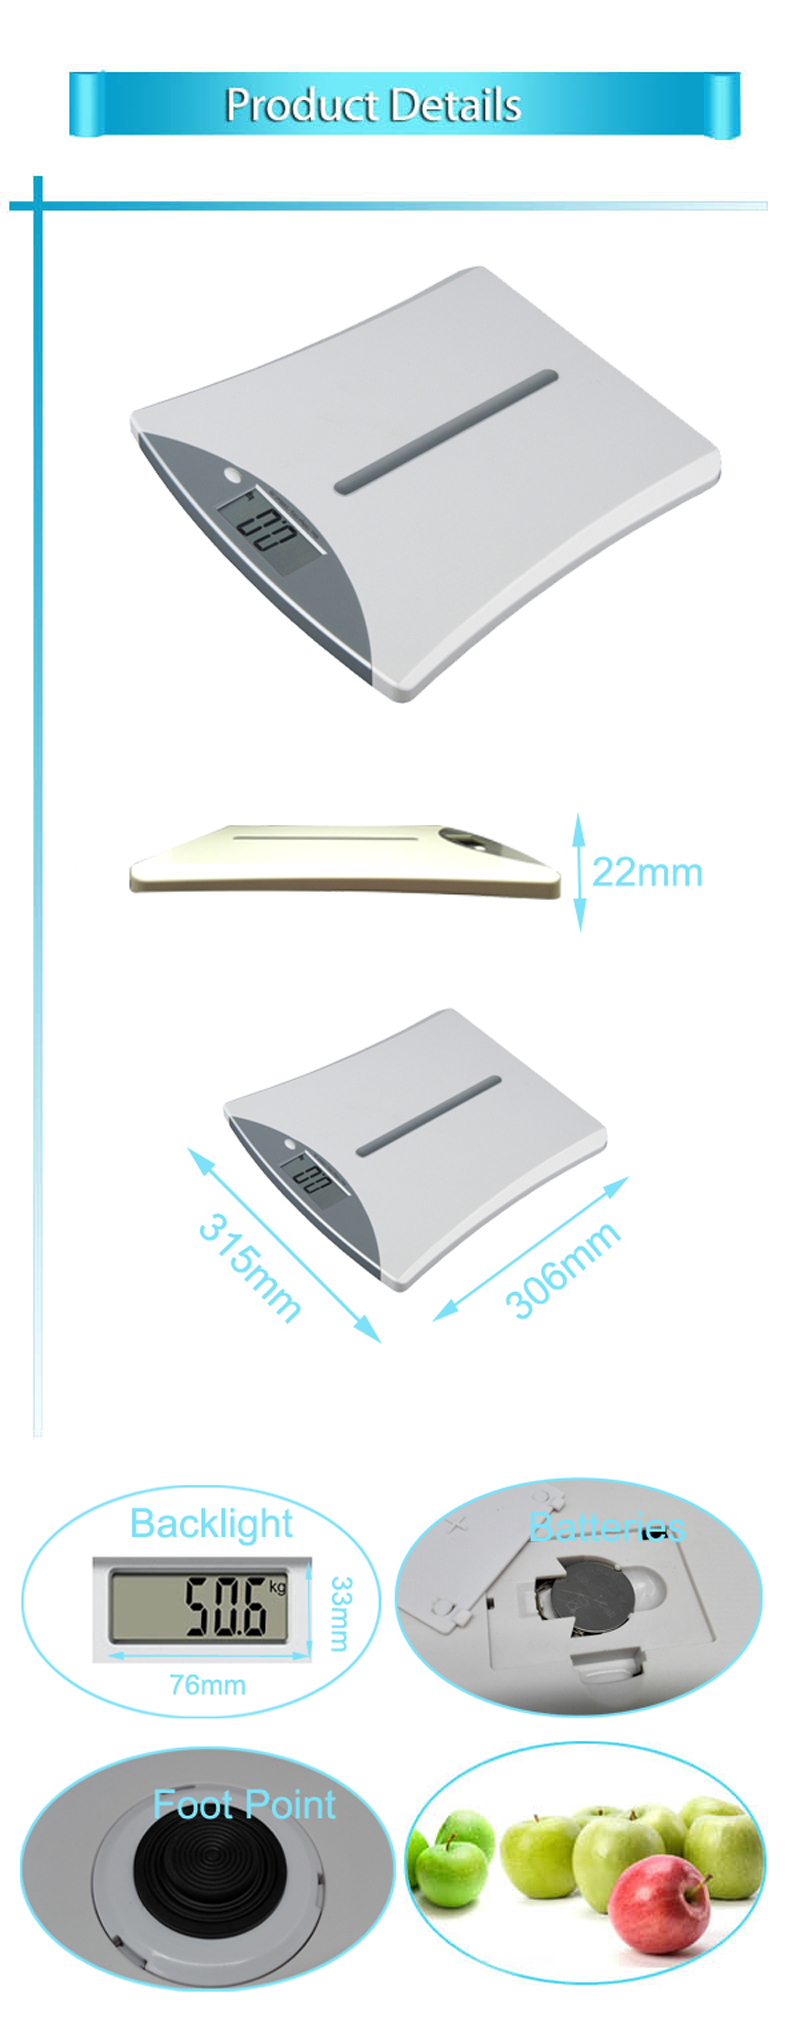 Sunny WS069 Household Design Digital Body Weighing Scale For Bathroom